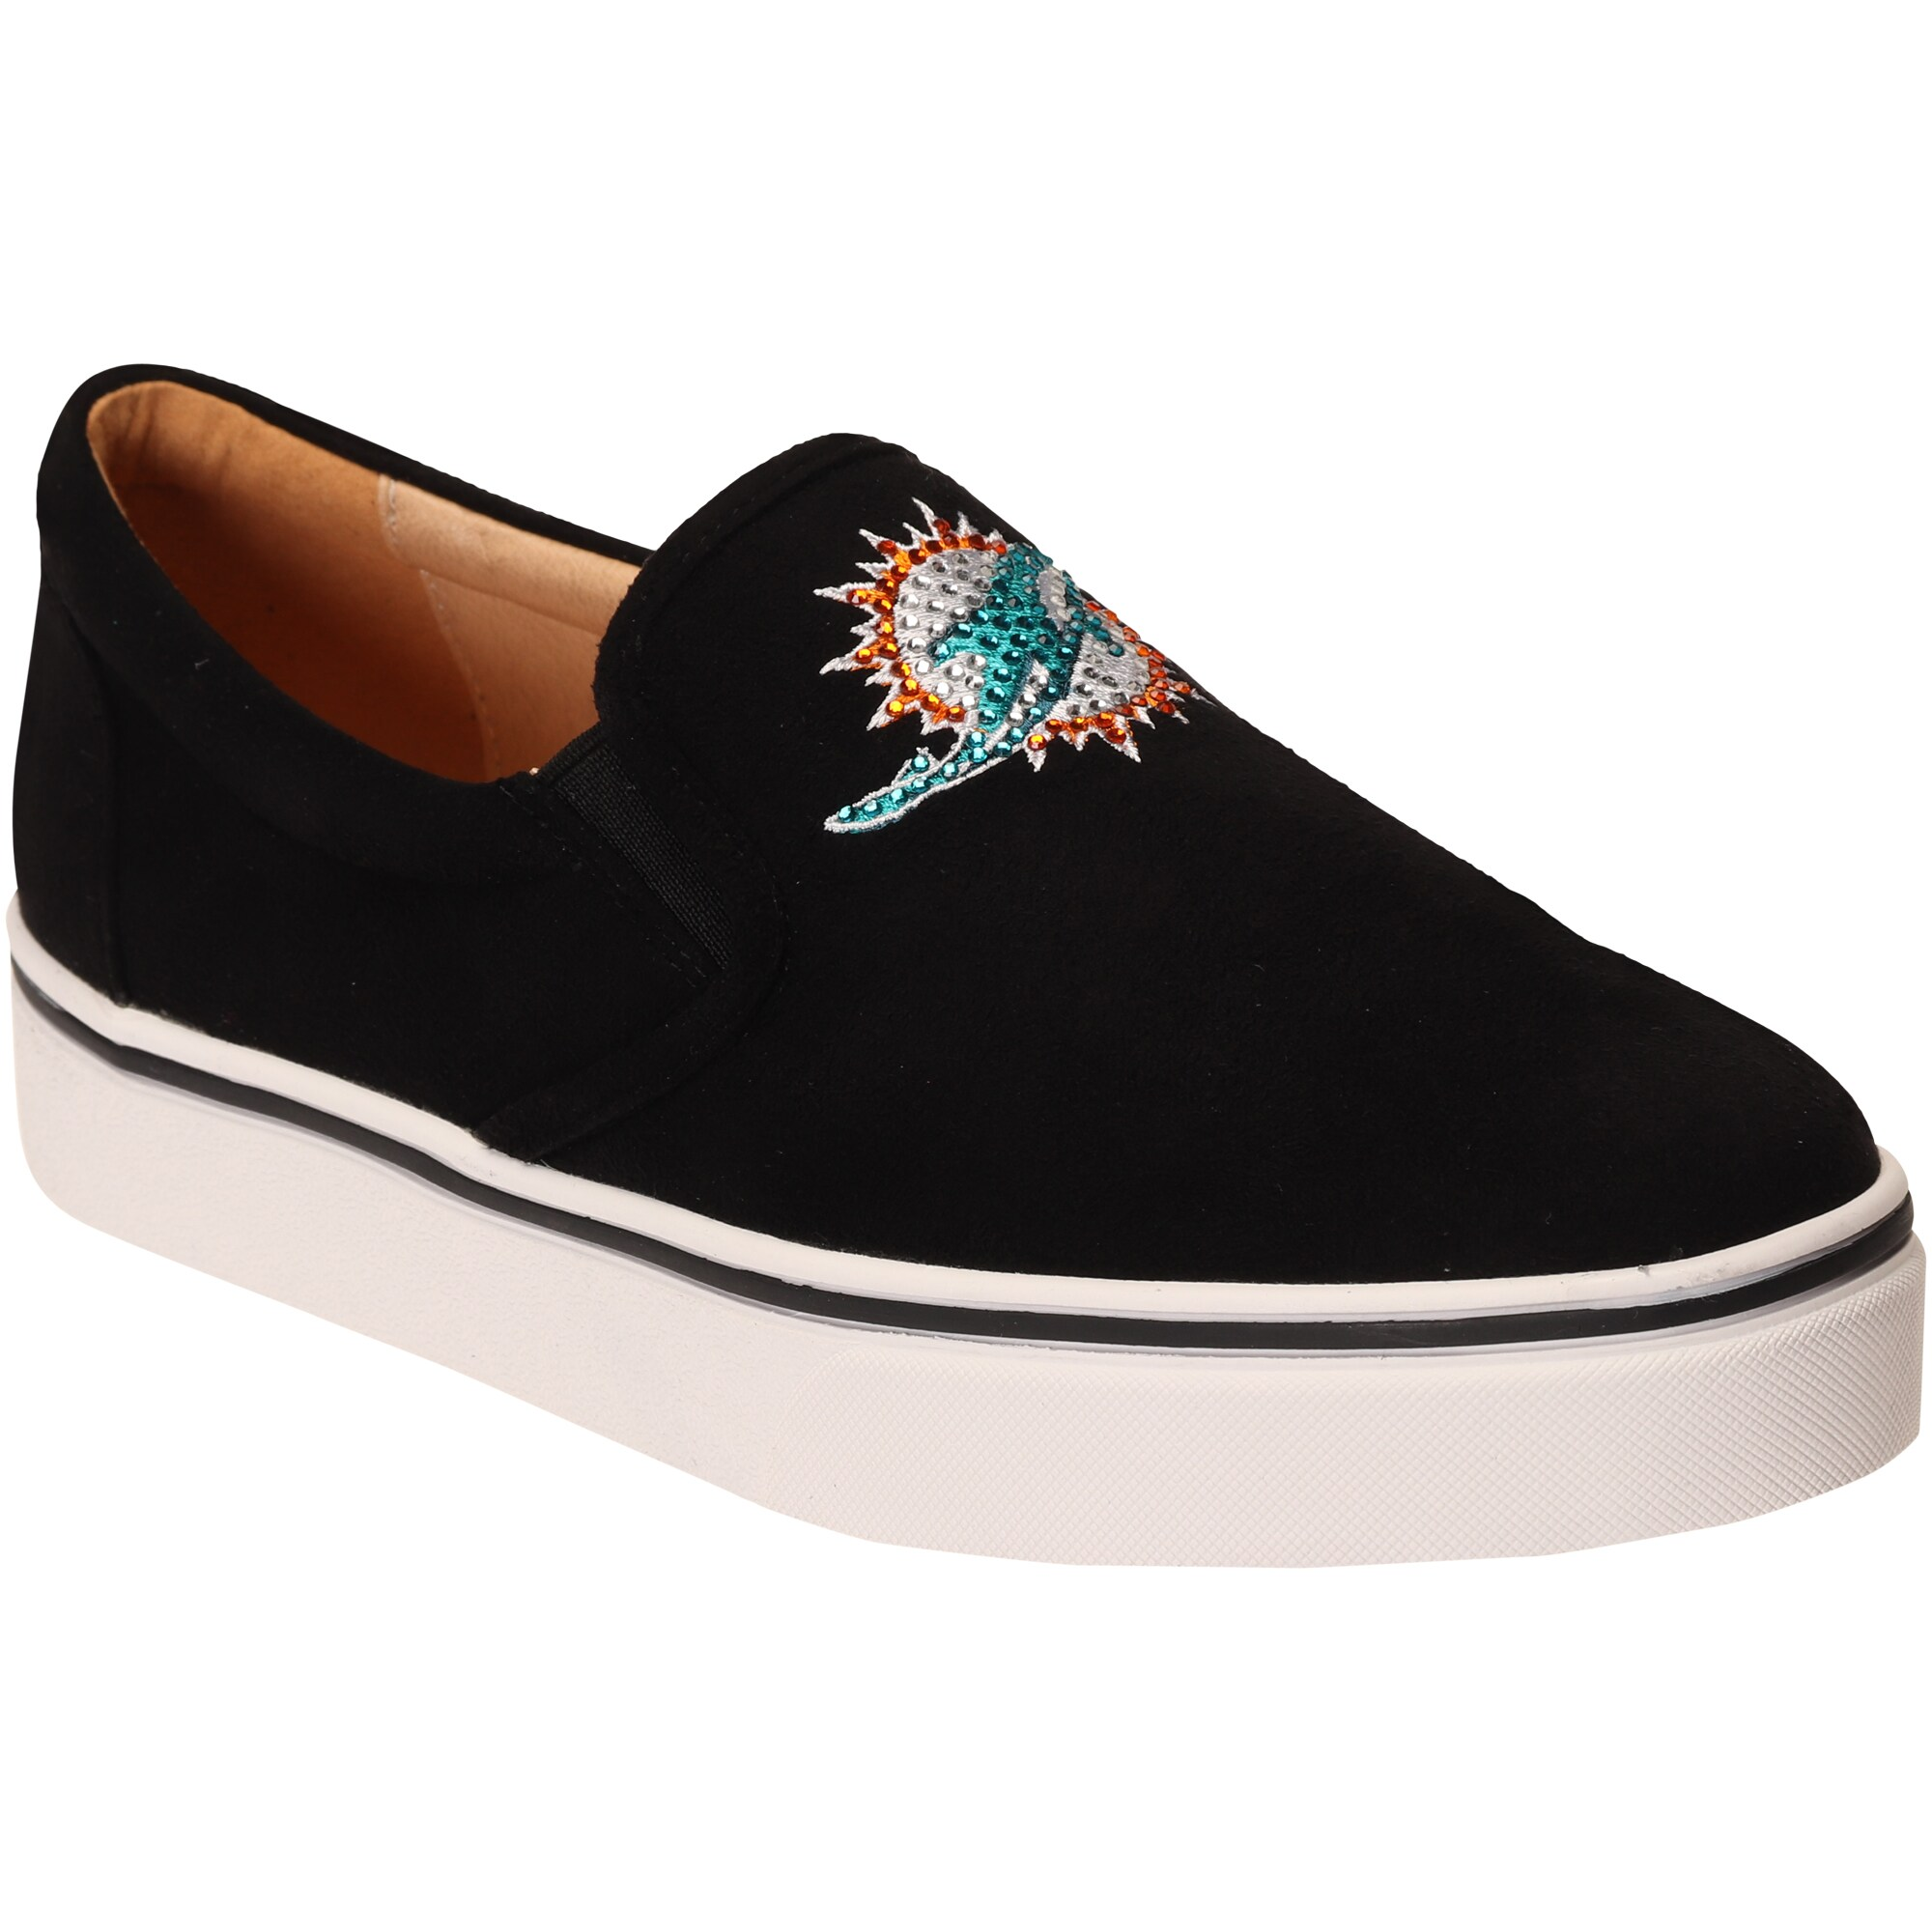 Miami Dolphins Cuce Women's Suede Slip On Shoe - Black